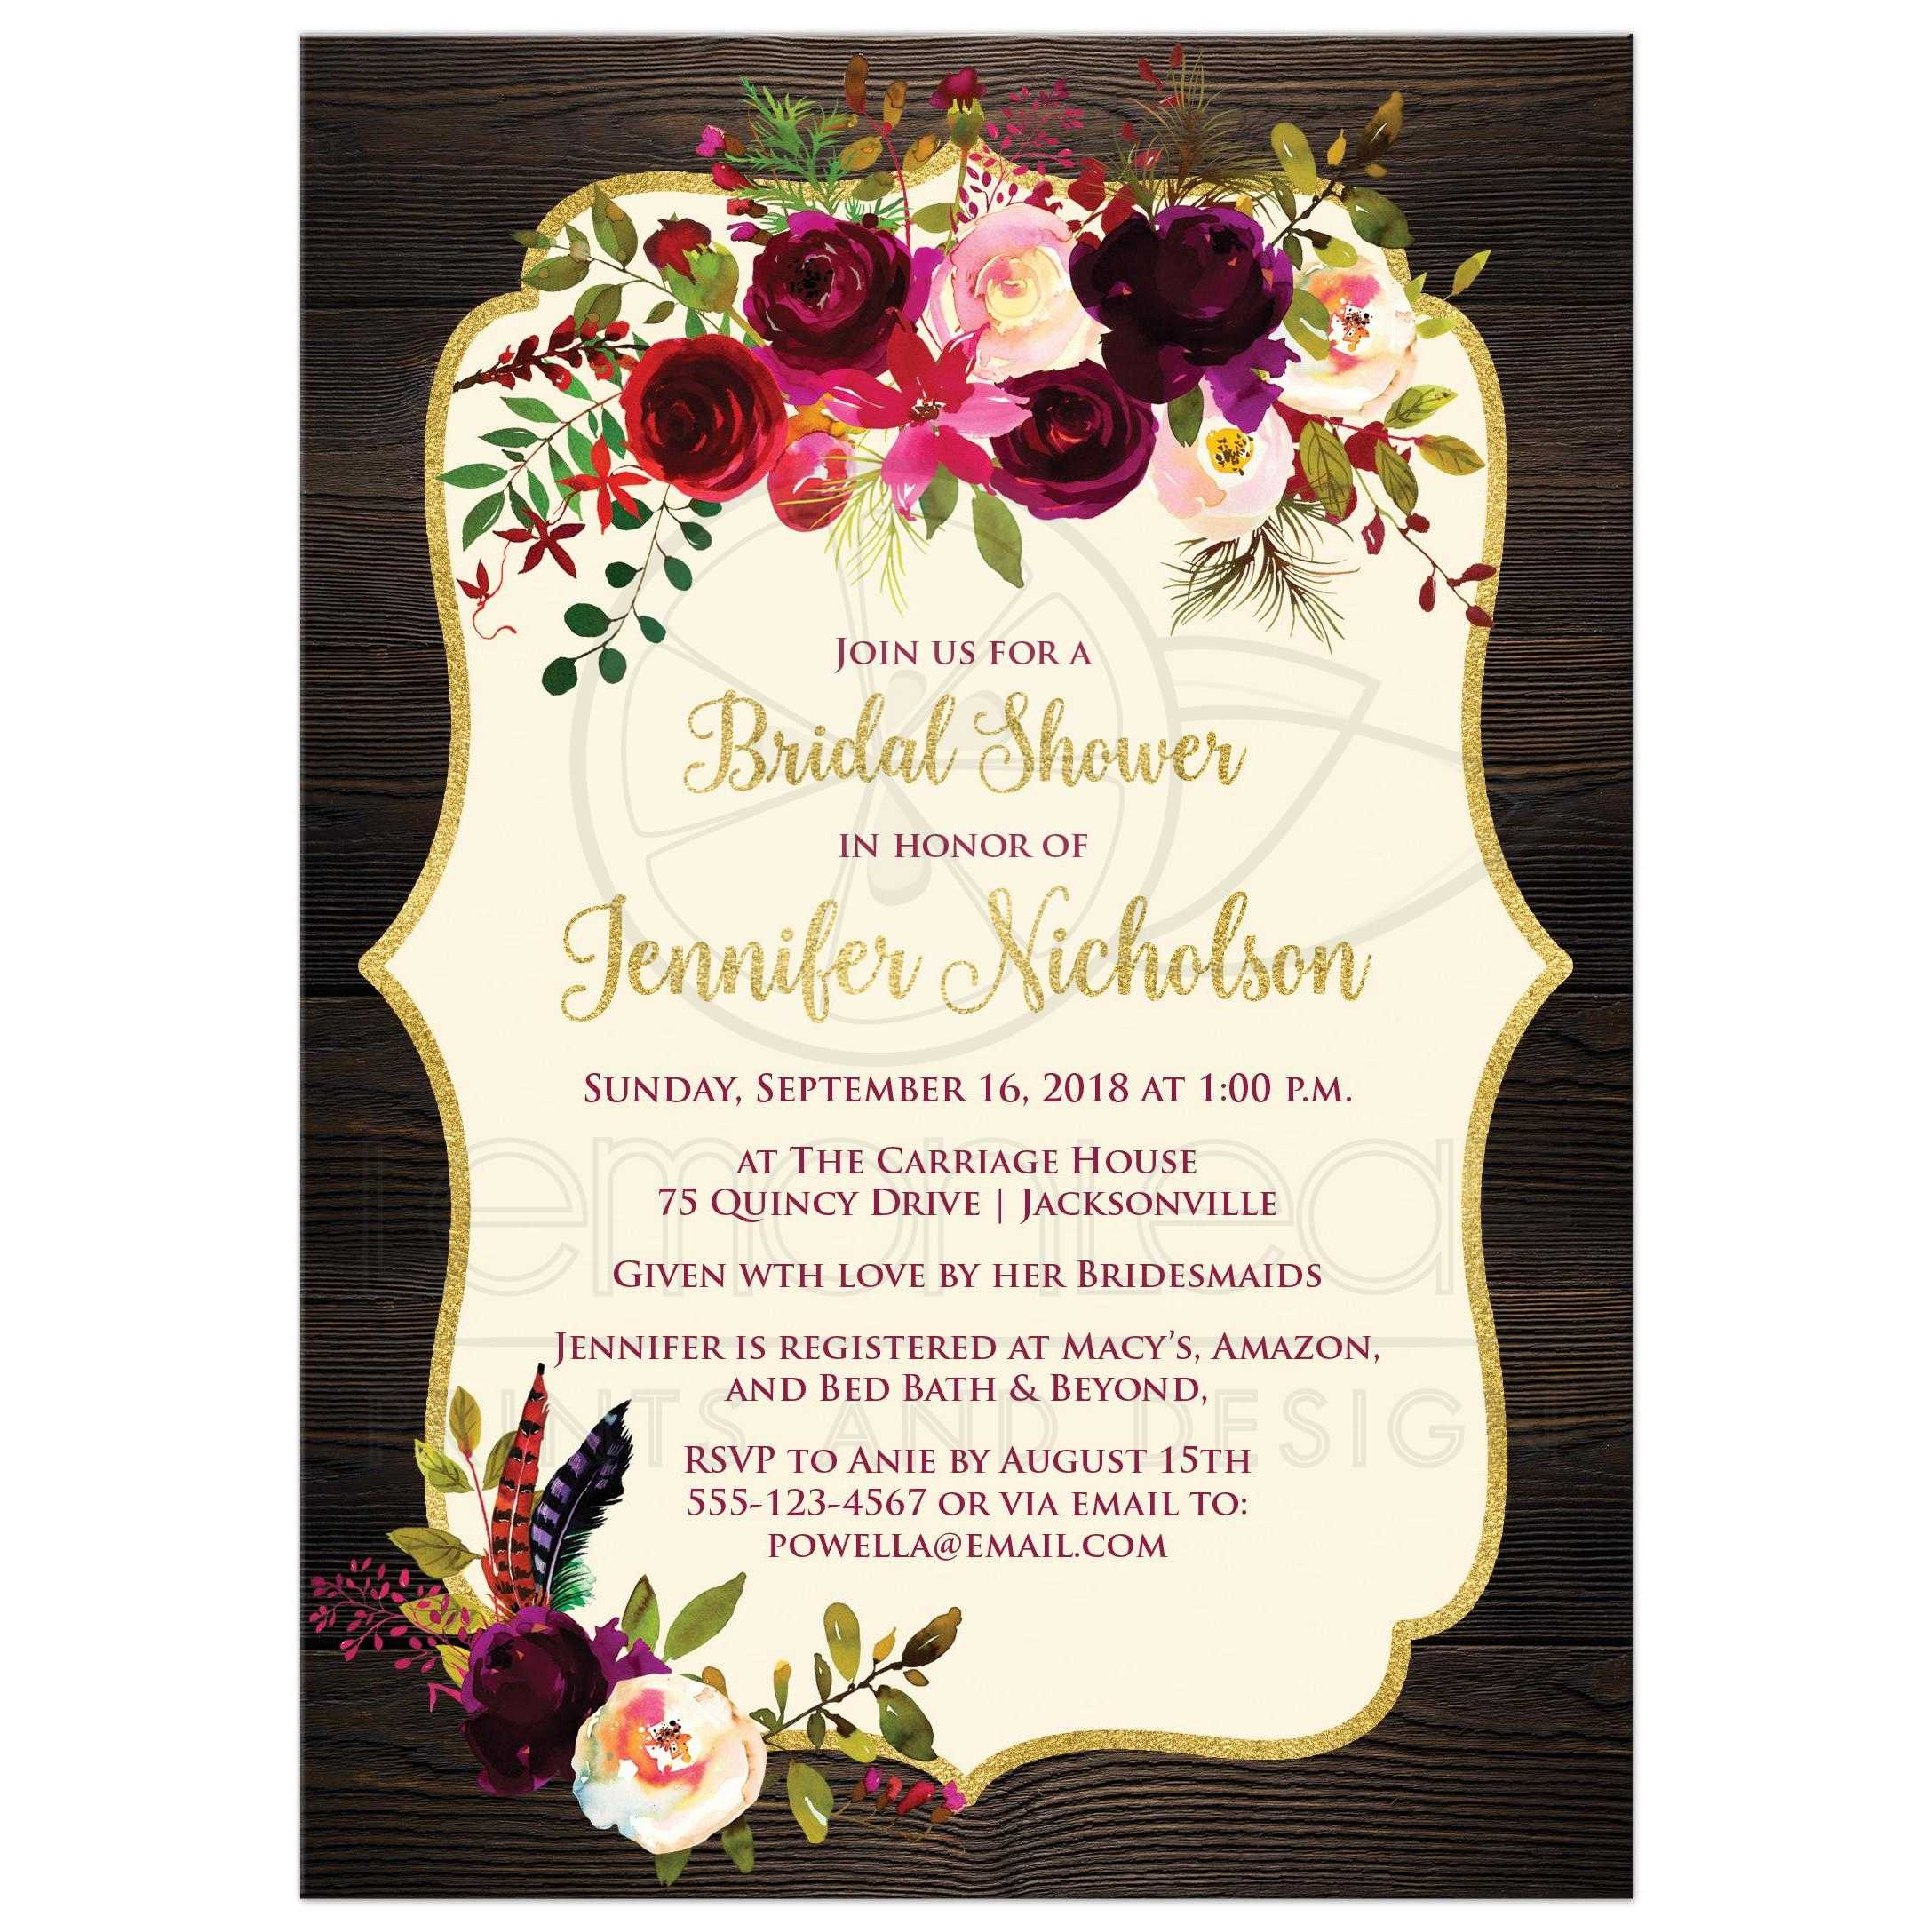 Barn Wedding Invitations 005 - Barn Wedding Invitations